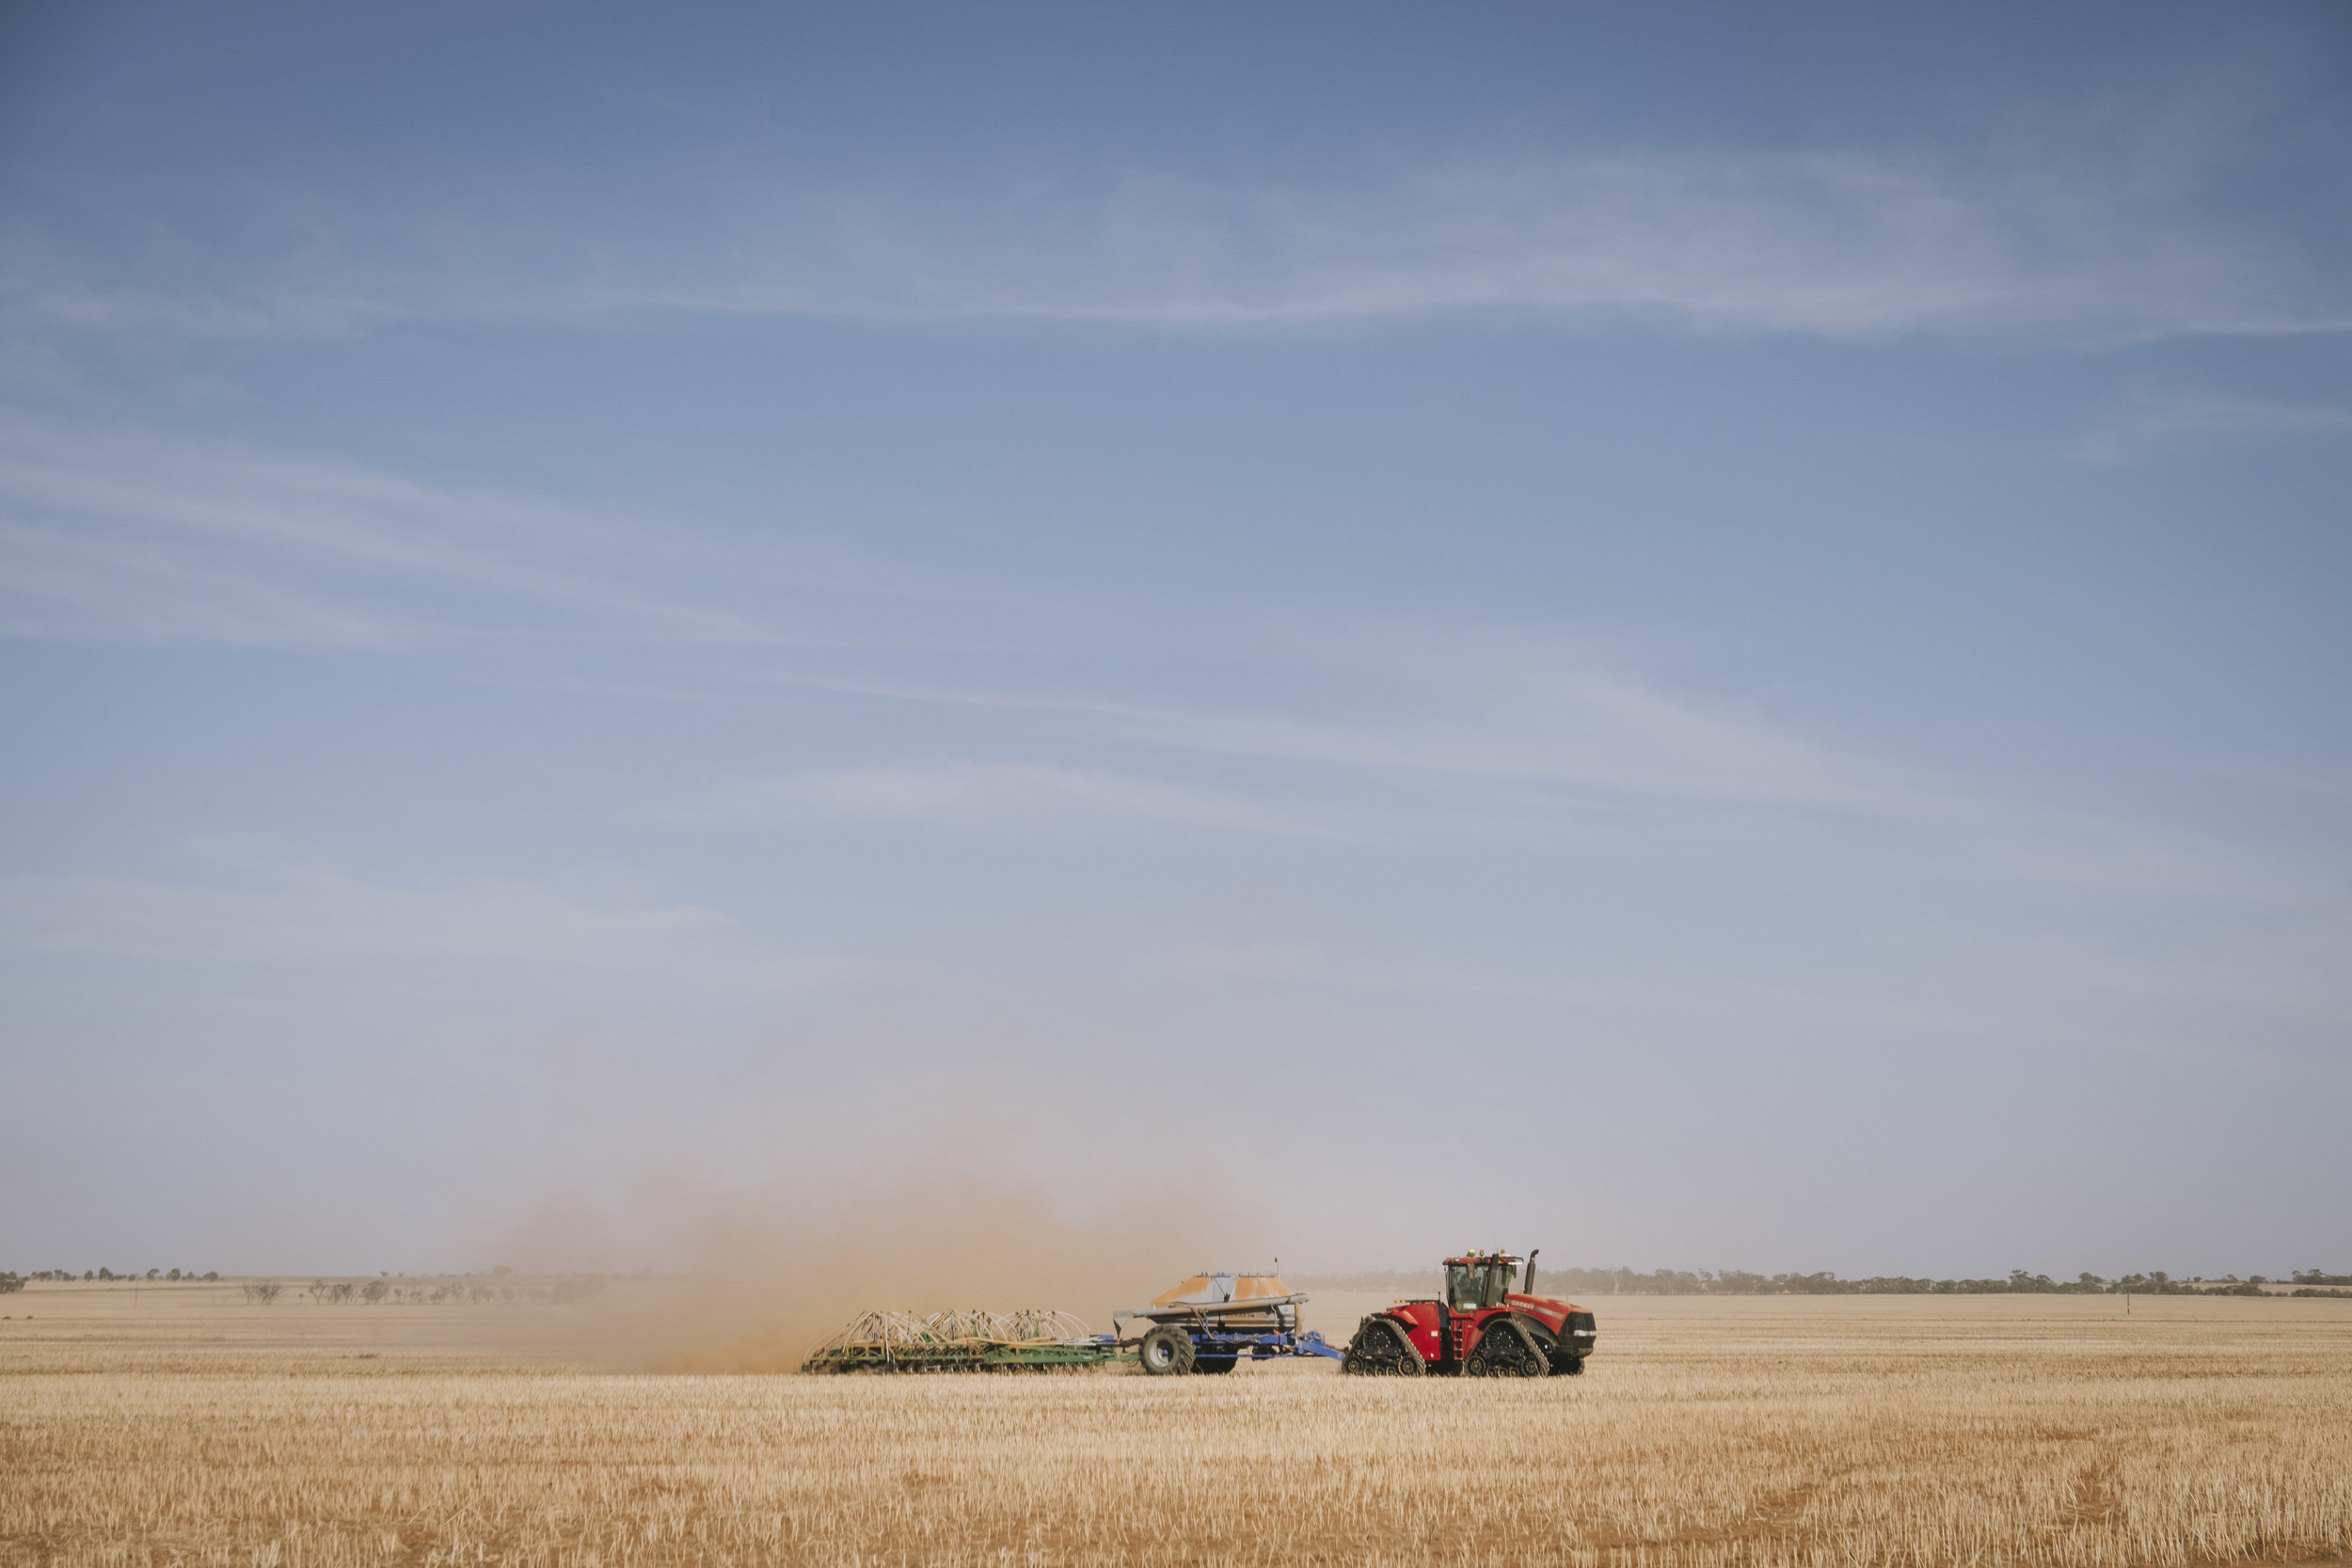 Angie Roe Photography Wheatbelt Rural Farm Landscape Seeding (10).jpg